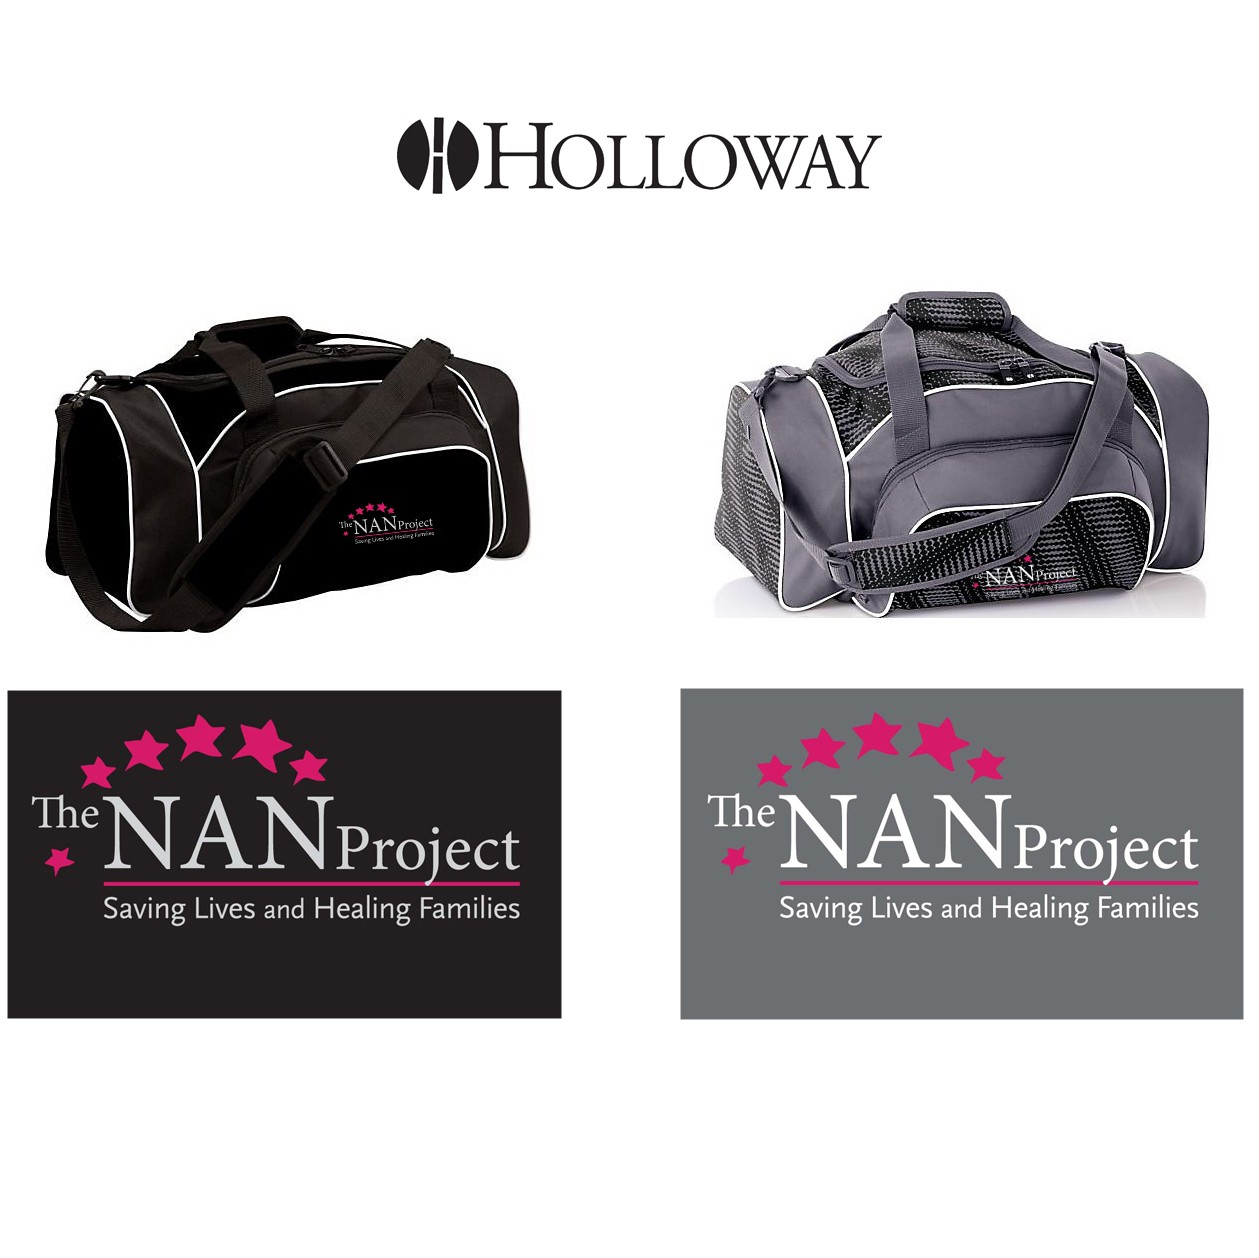 The NAN Project Holloway League Duffel Bag